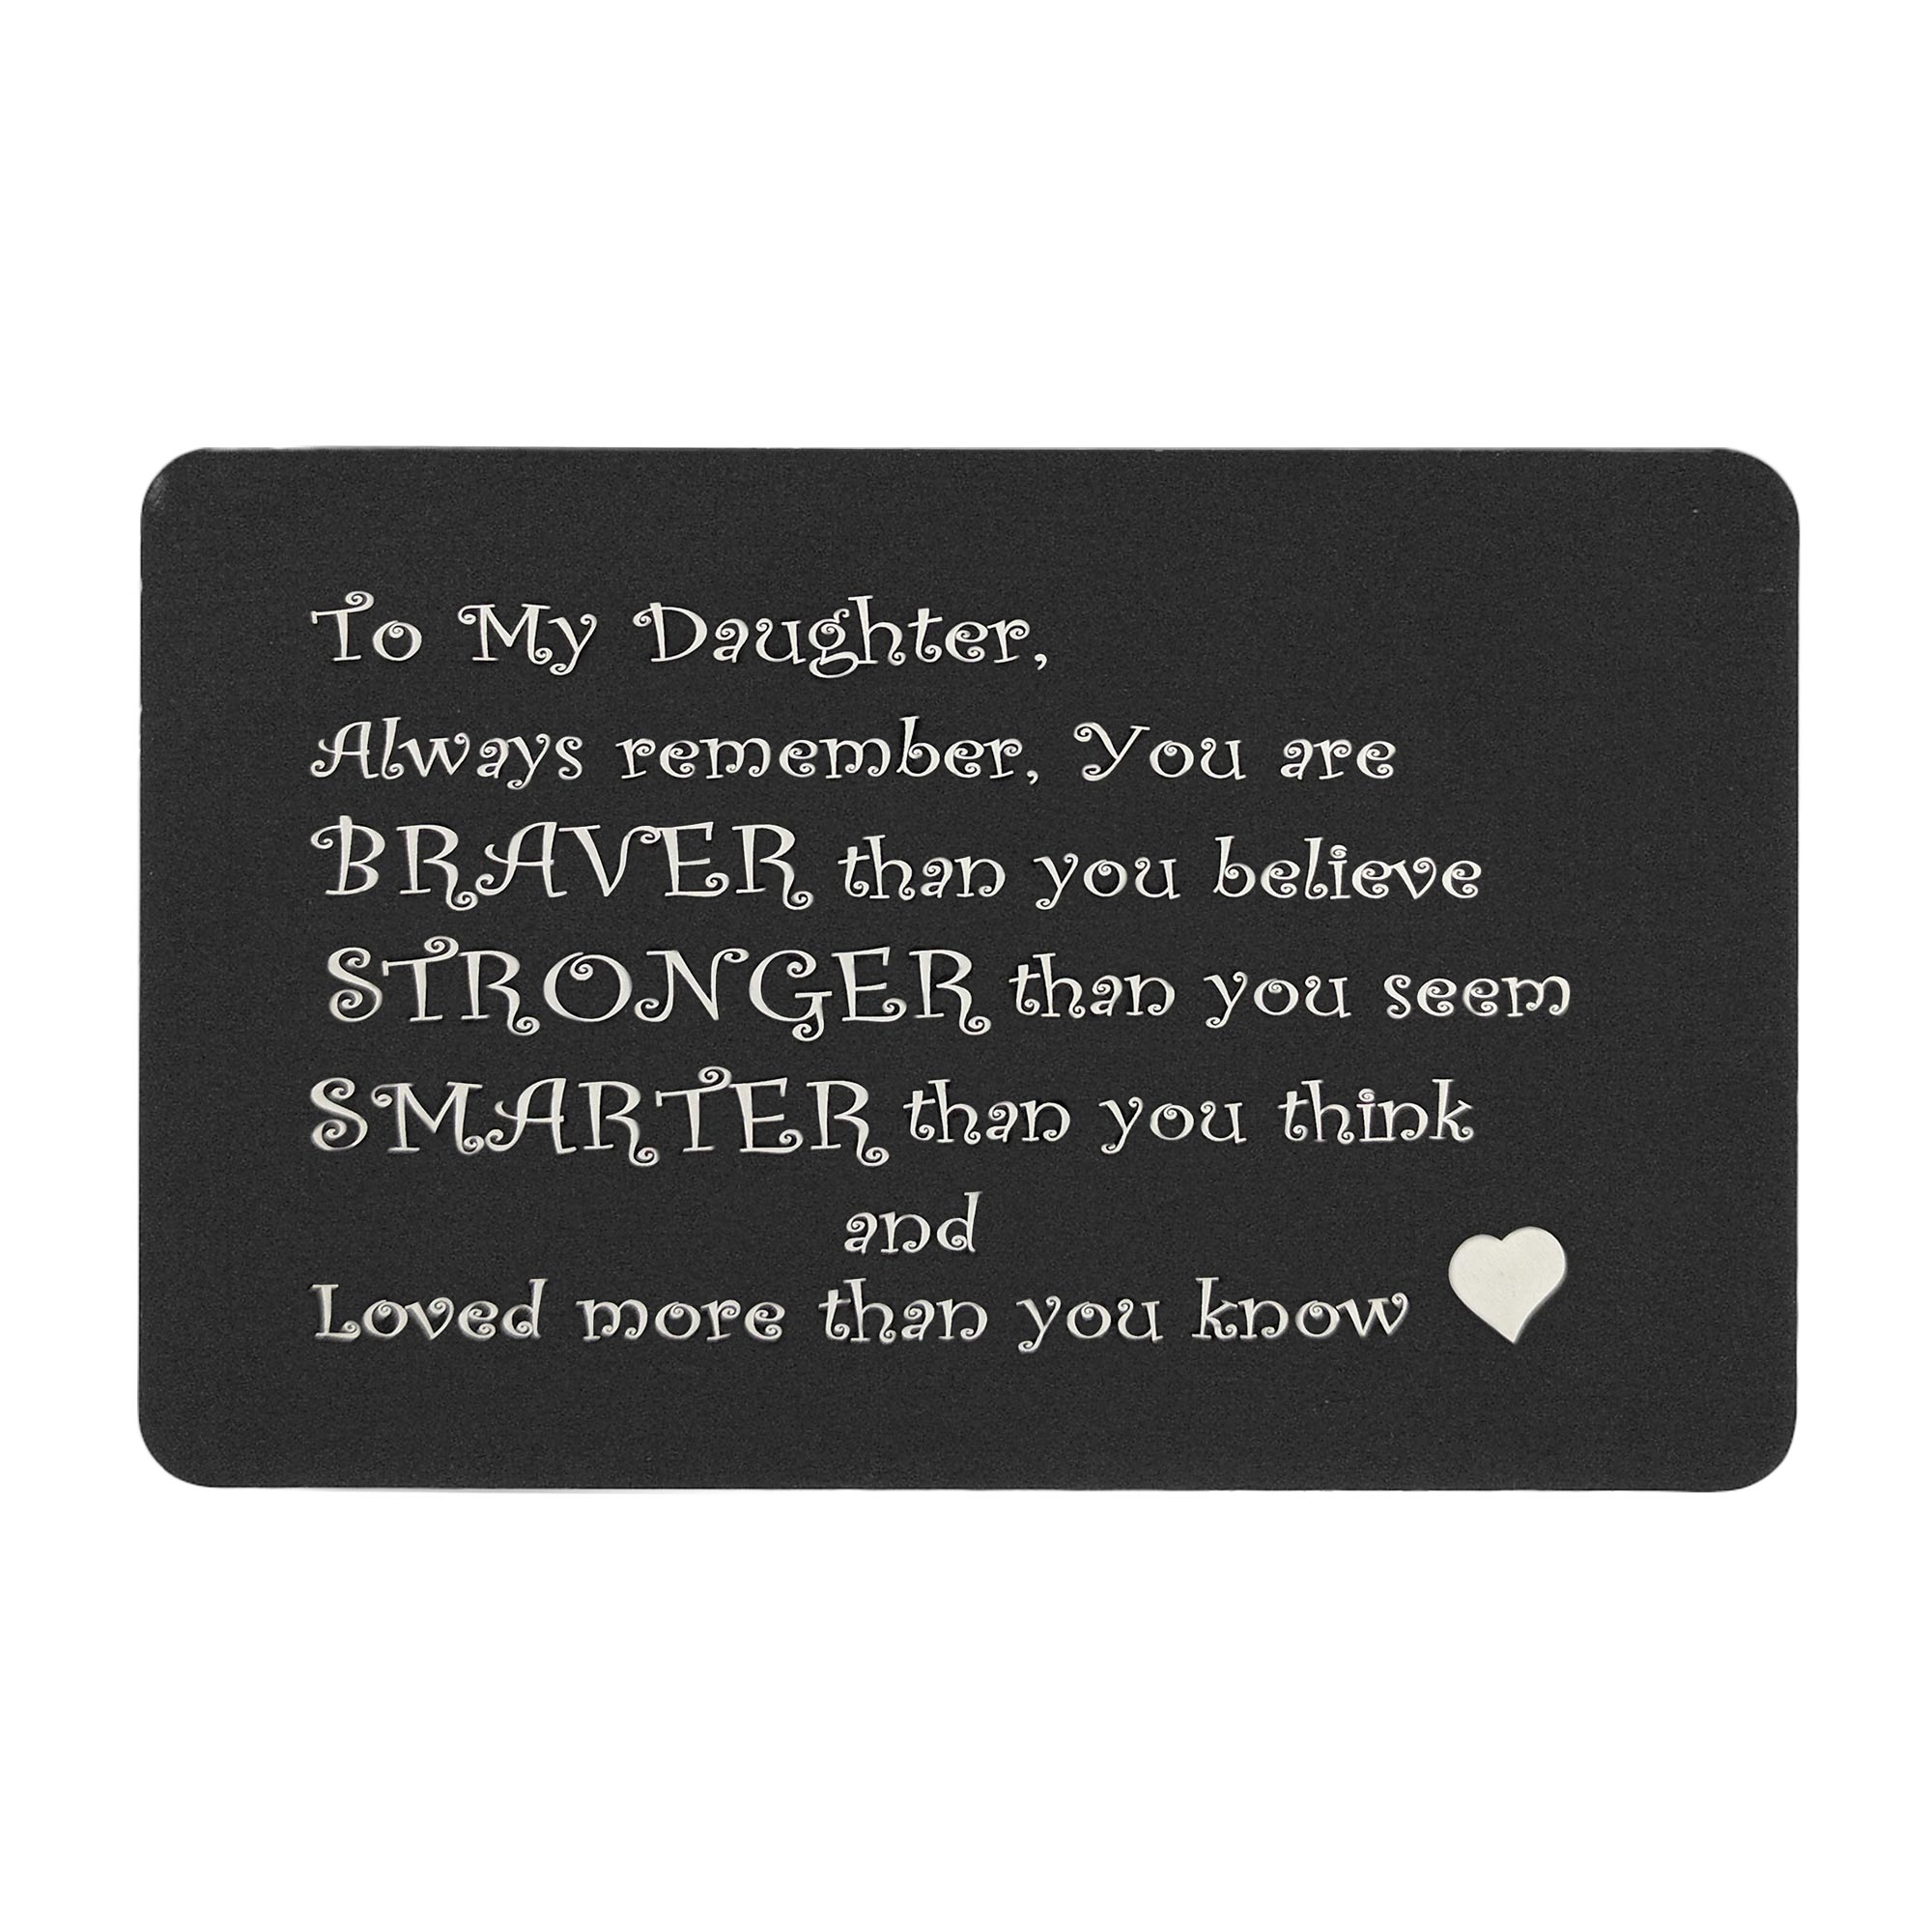 "Anodized Aluminum Black Engrave Metal Wallet Insert Daughter ""Braver Stronger Smarter\"" Mini Love Gift Note Card"